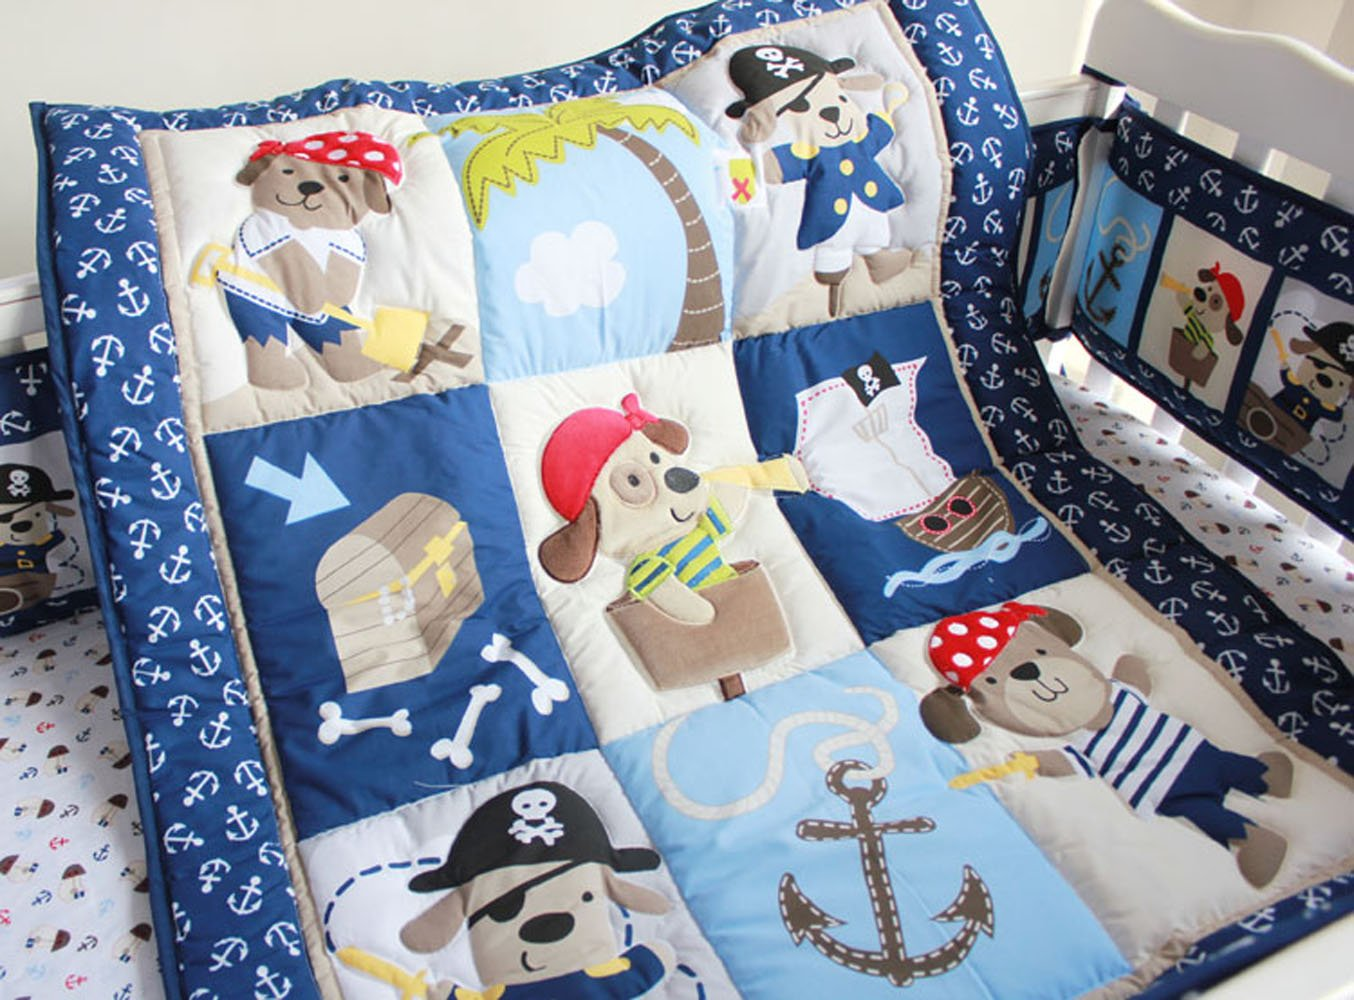 Nursery Crib Quilts Cartoon Blue Elephant/Blue Whale/Pirates of The Caribbean/Animal Voyage Baby Girl Baby Boy Comforter Baby Gift Idea (Pirates of The Caribbean) by CribMATE